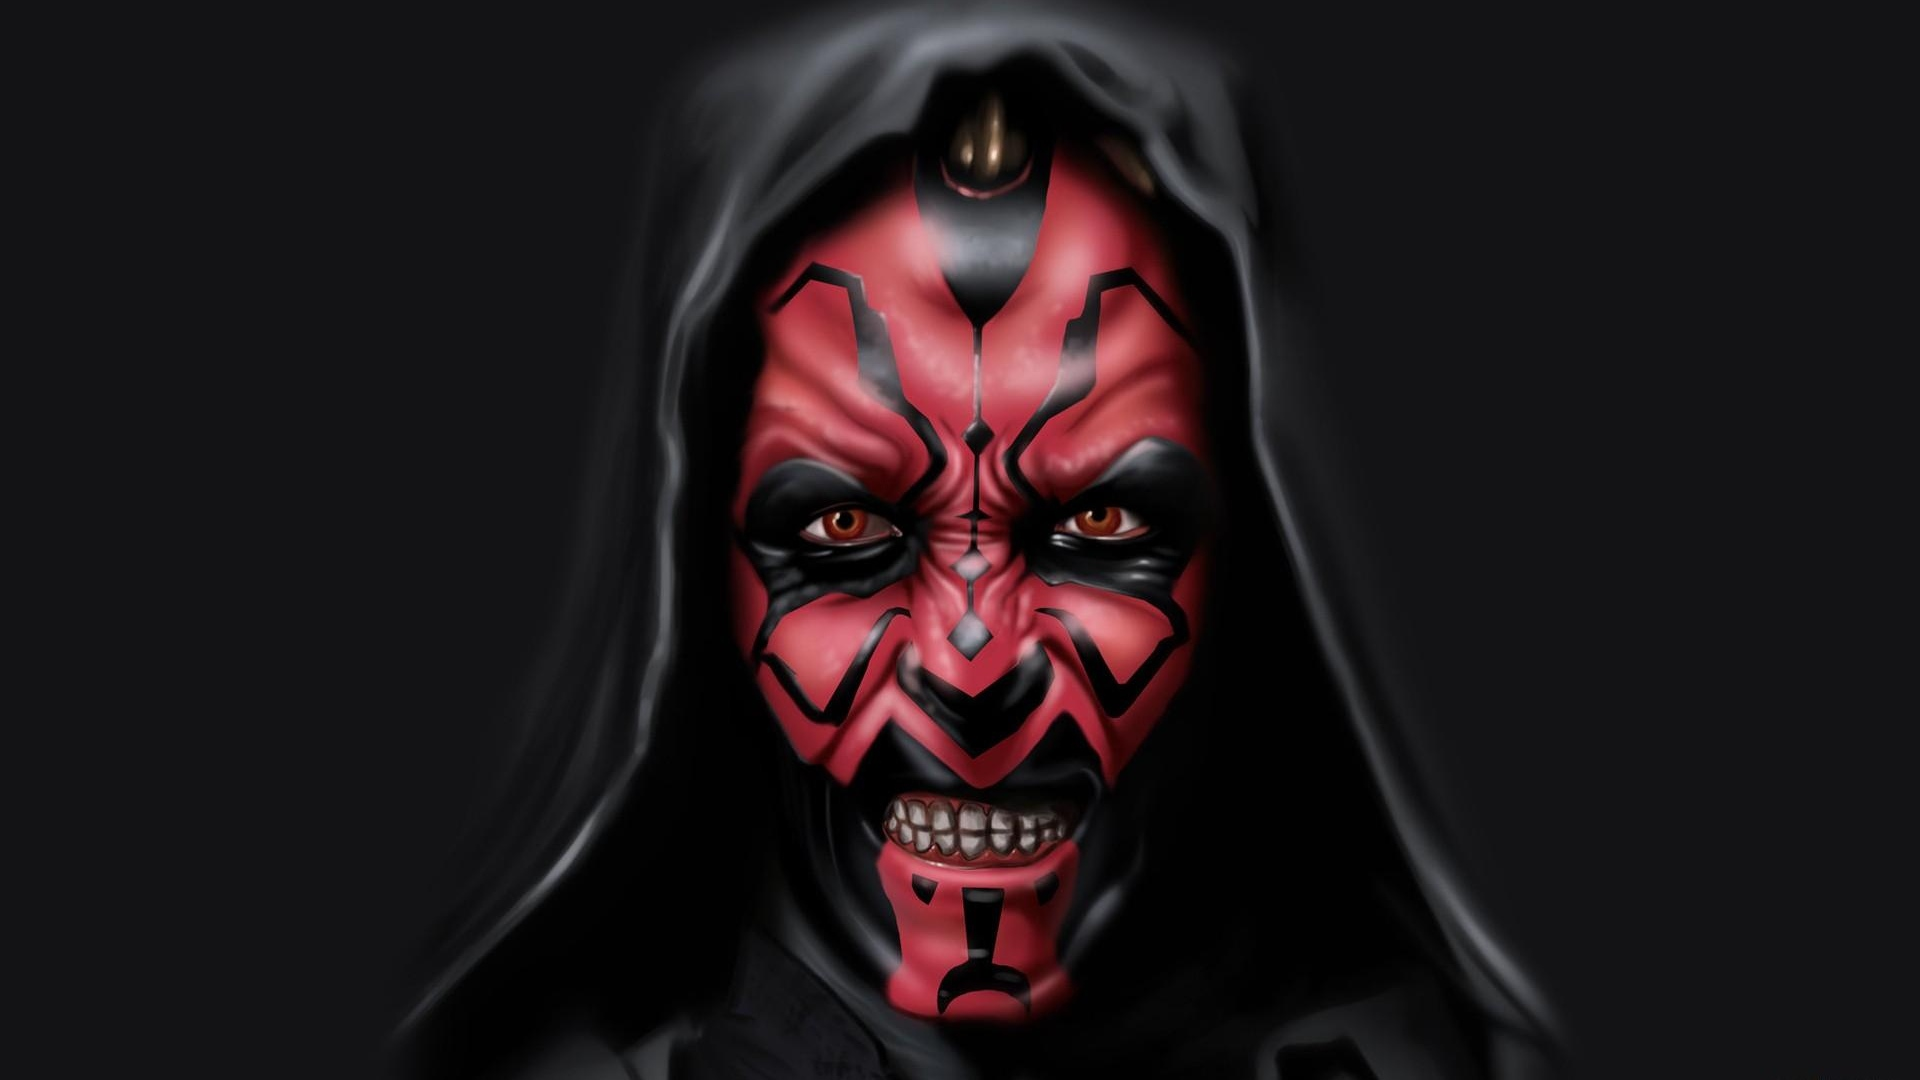 star wars sith wallpaper 1080p